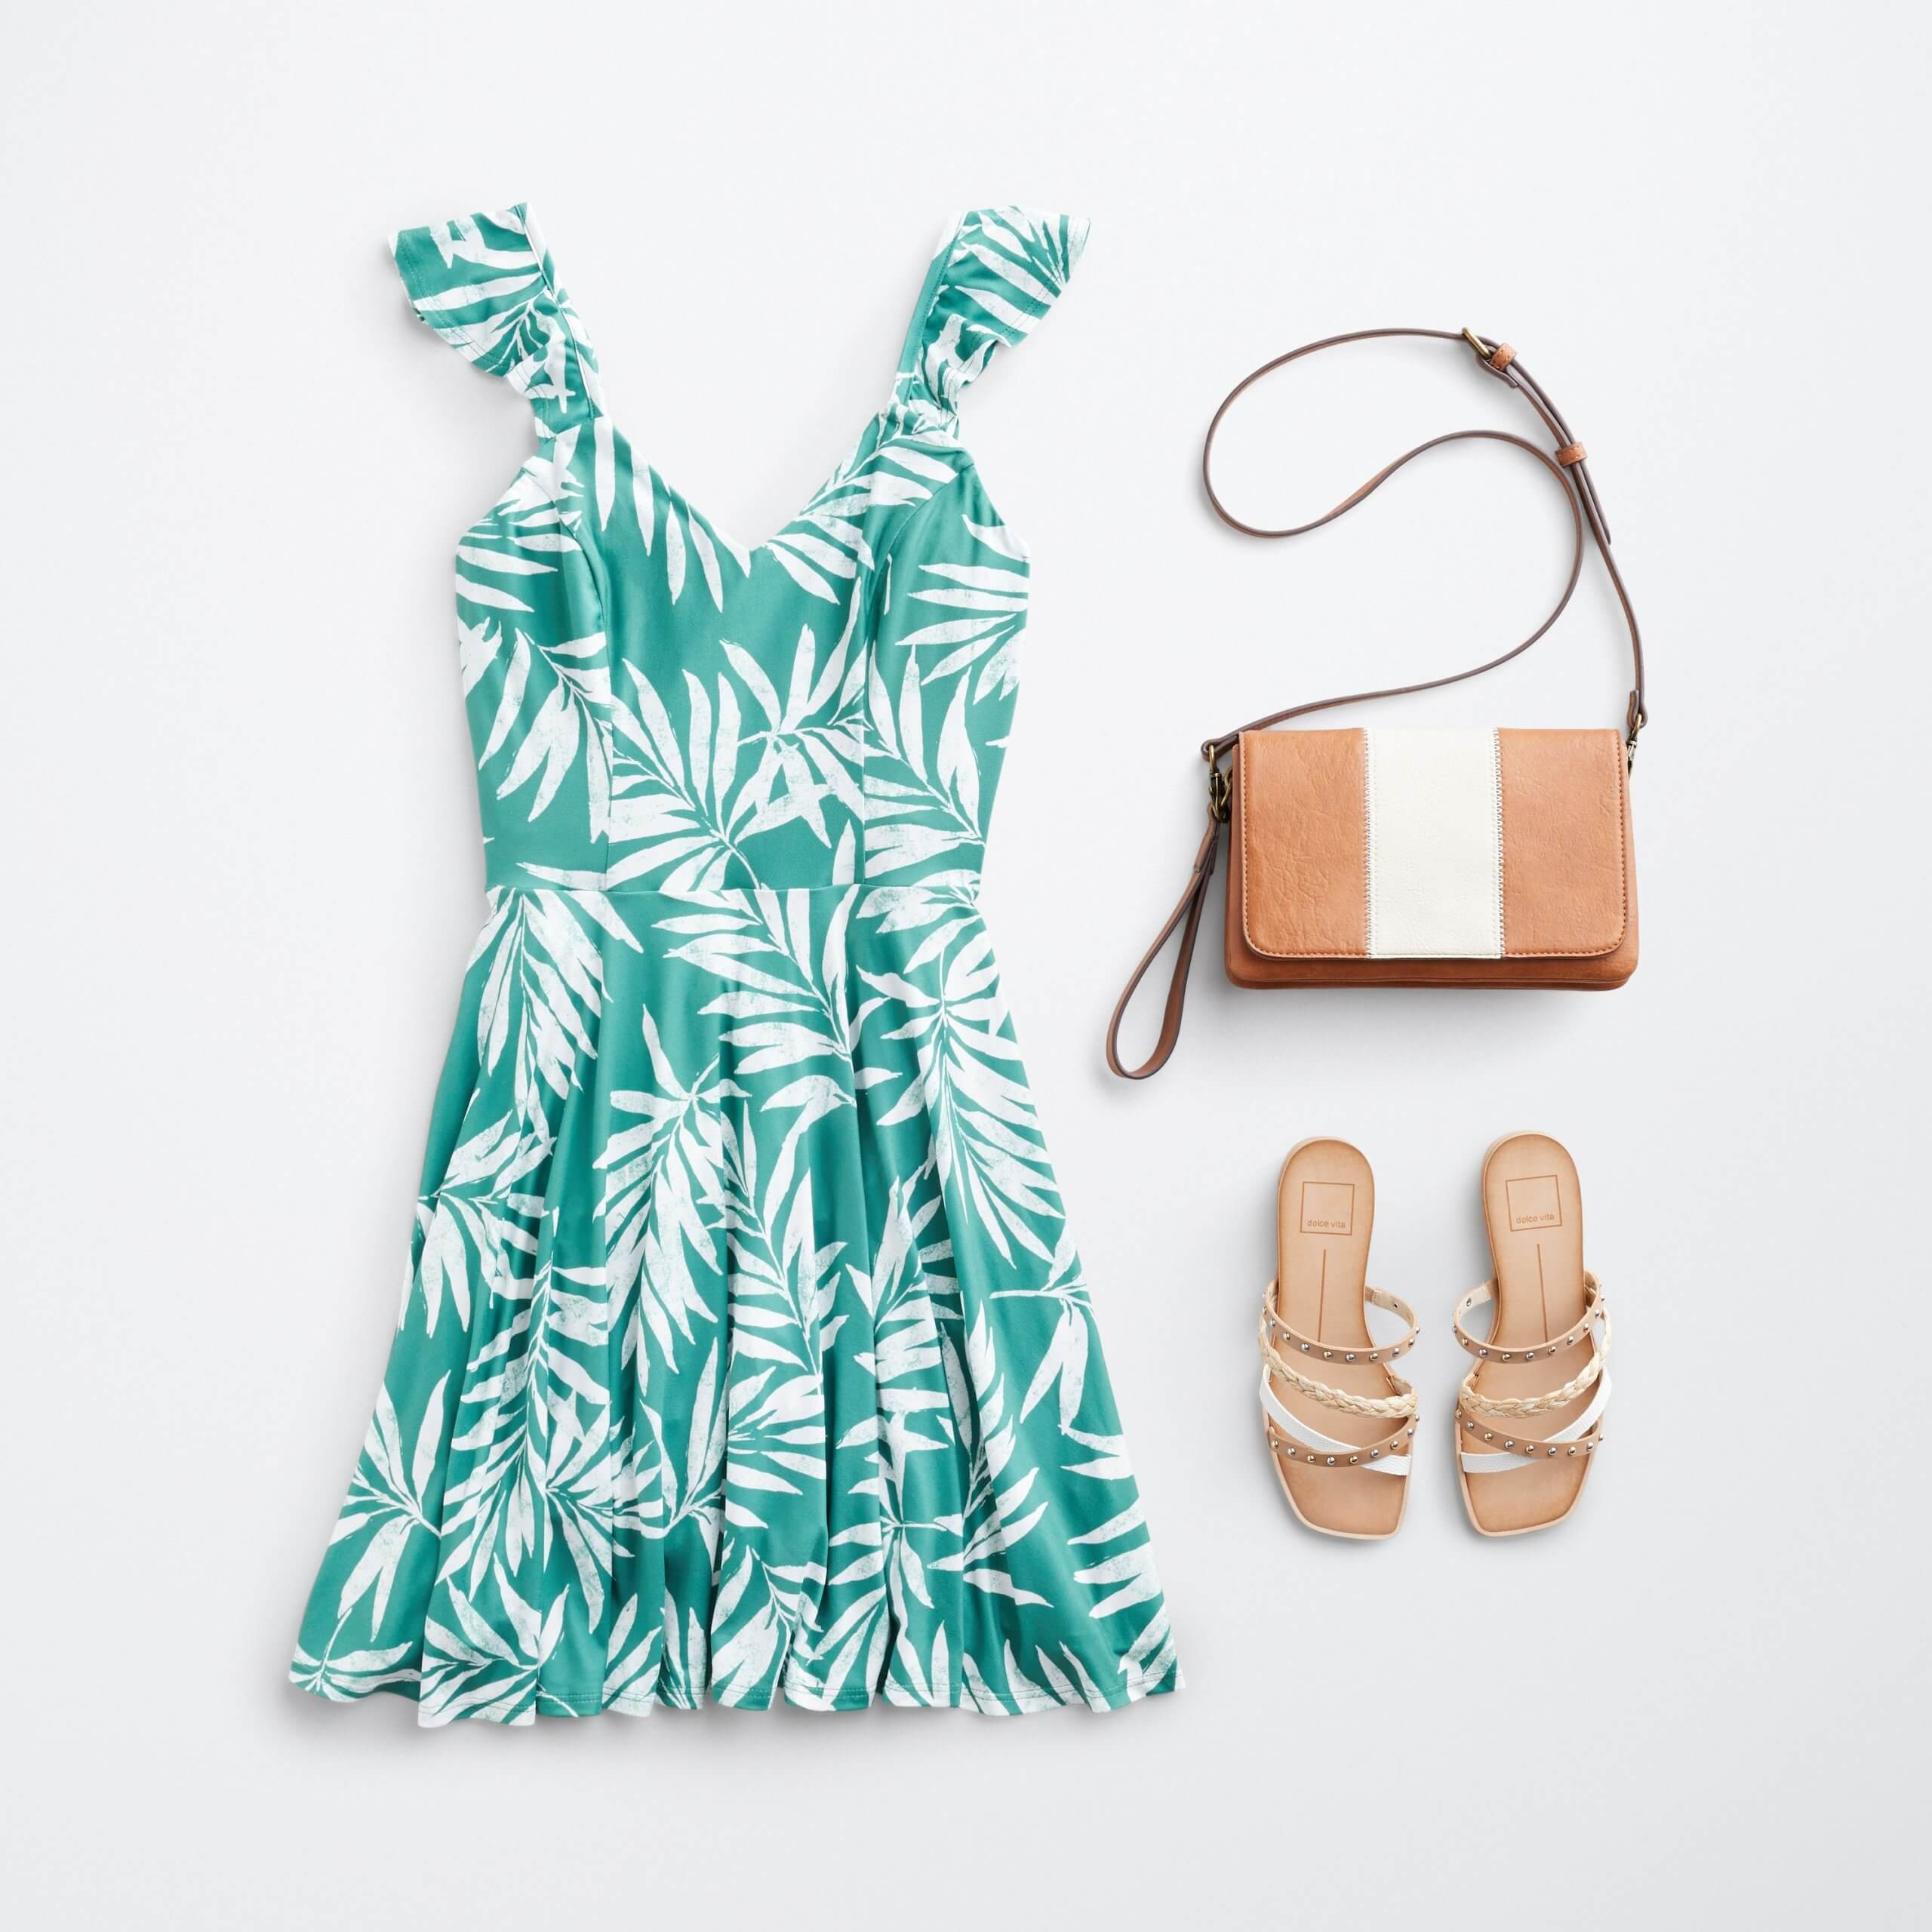 Stitch Fix women's outfit laydown featuring green tropical print dress, brown and white bag and strappy sandals.